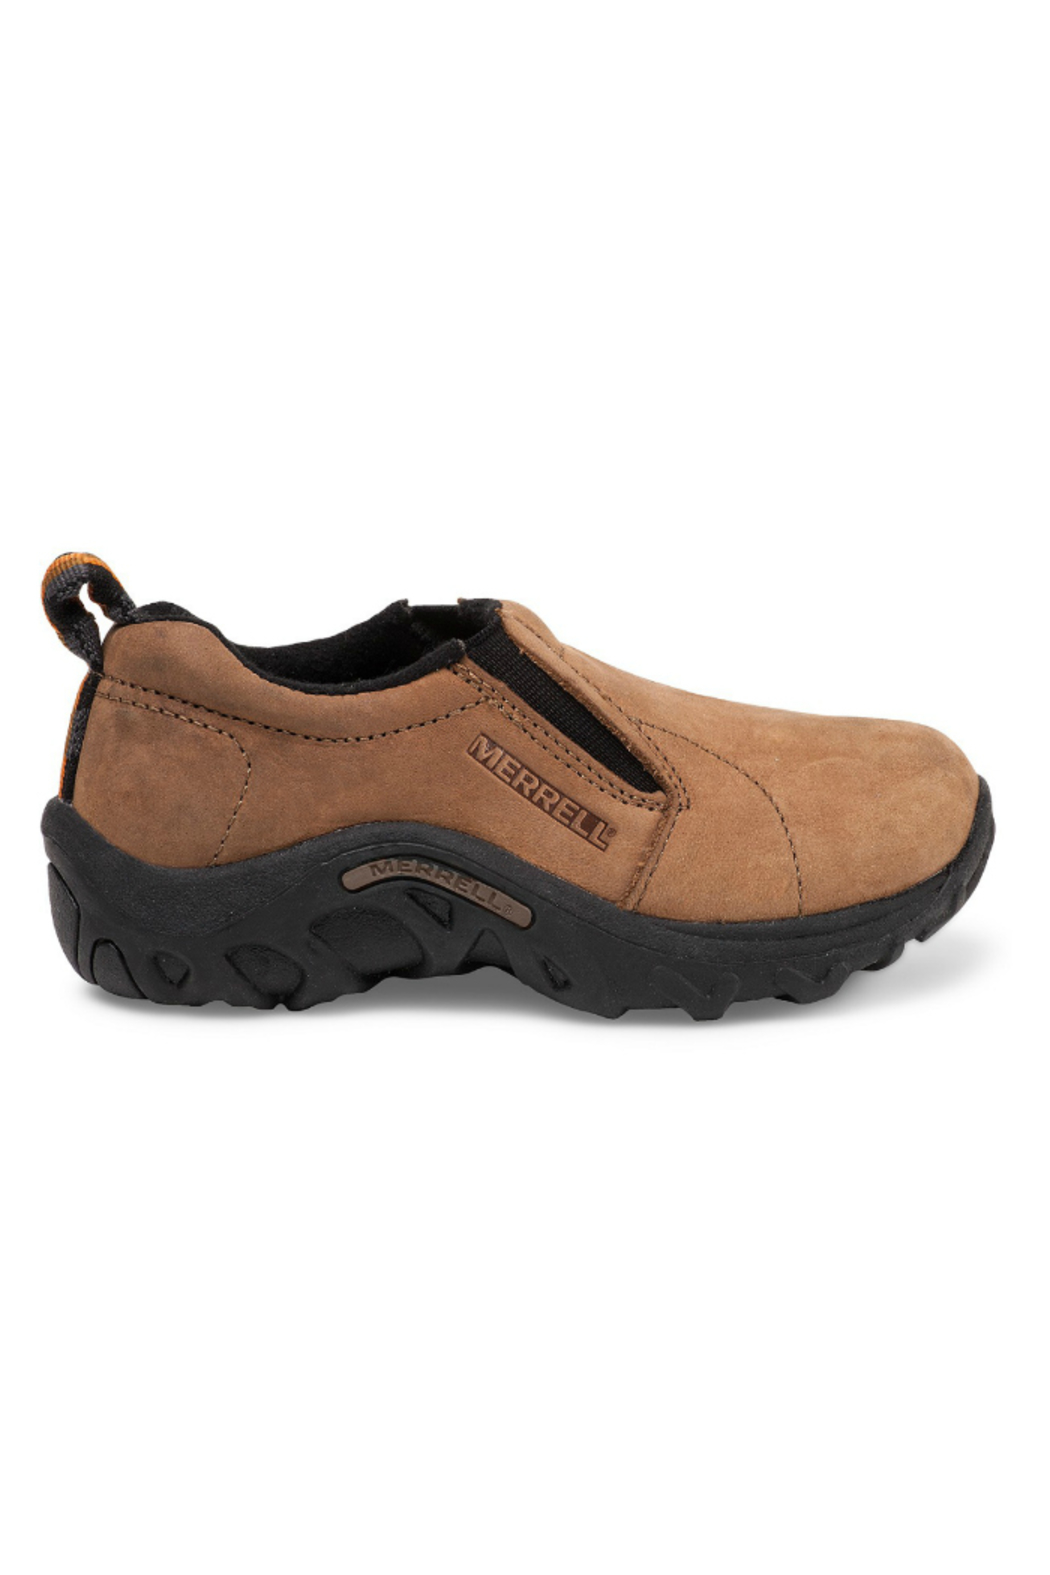 Merrell Kids Jungle Moc Brown Nubuck - Front Full Image